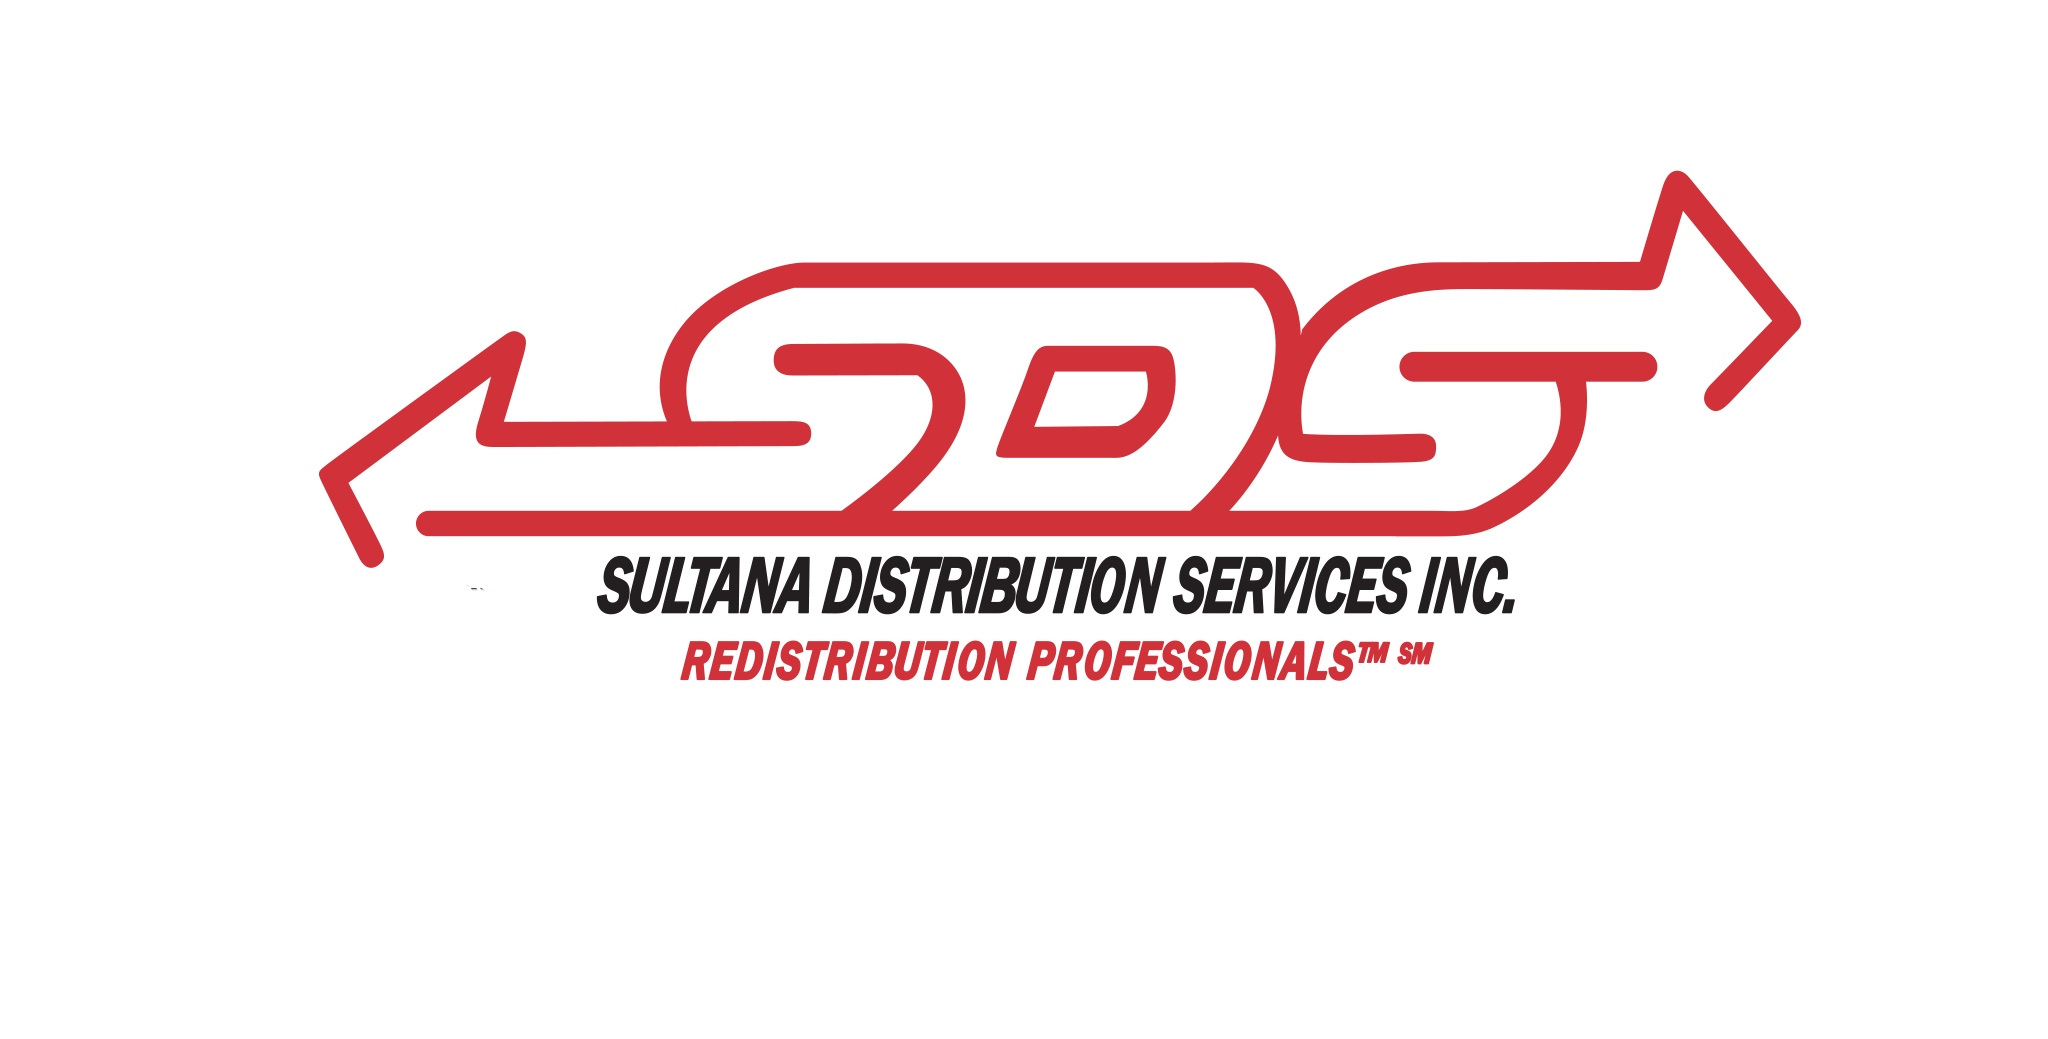 Sultana Distribution Services, Inc